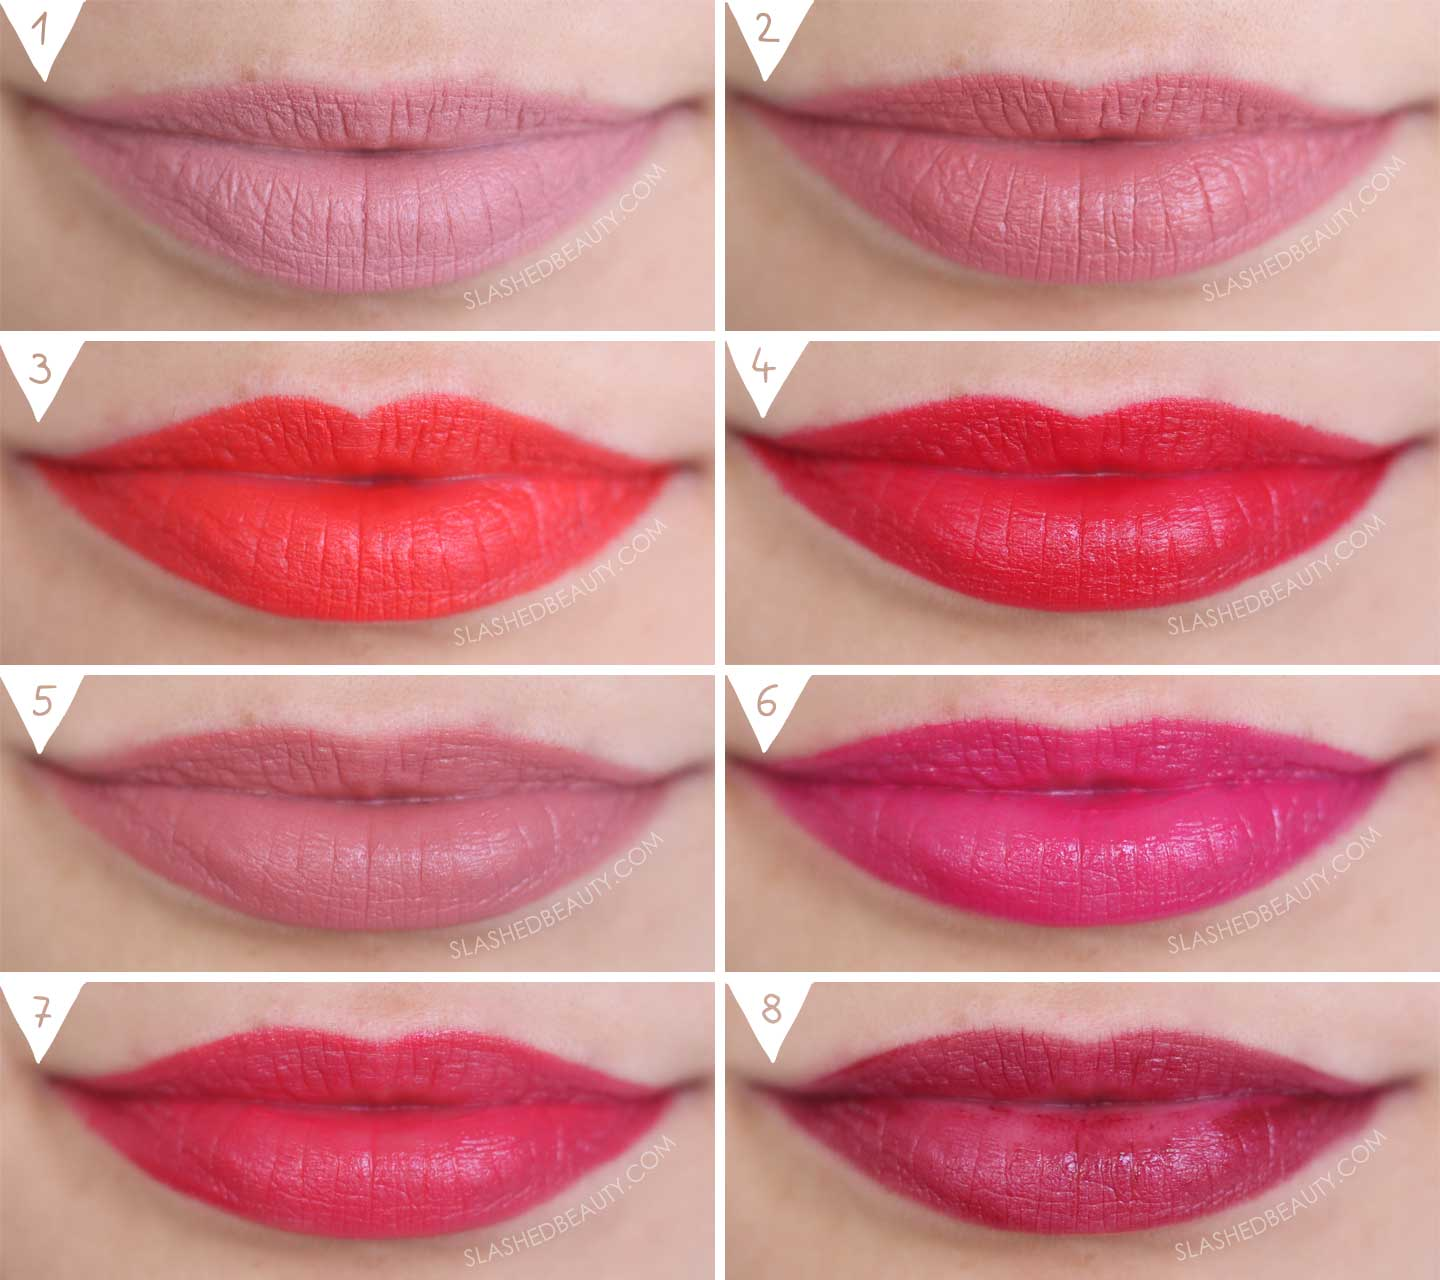 Revlon x Sofia Carson Collection Lipstick Swatches | Slashed Beauty